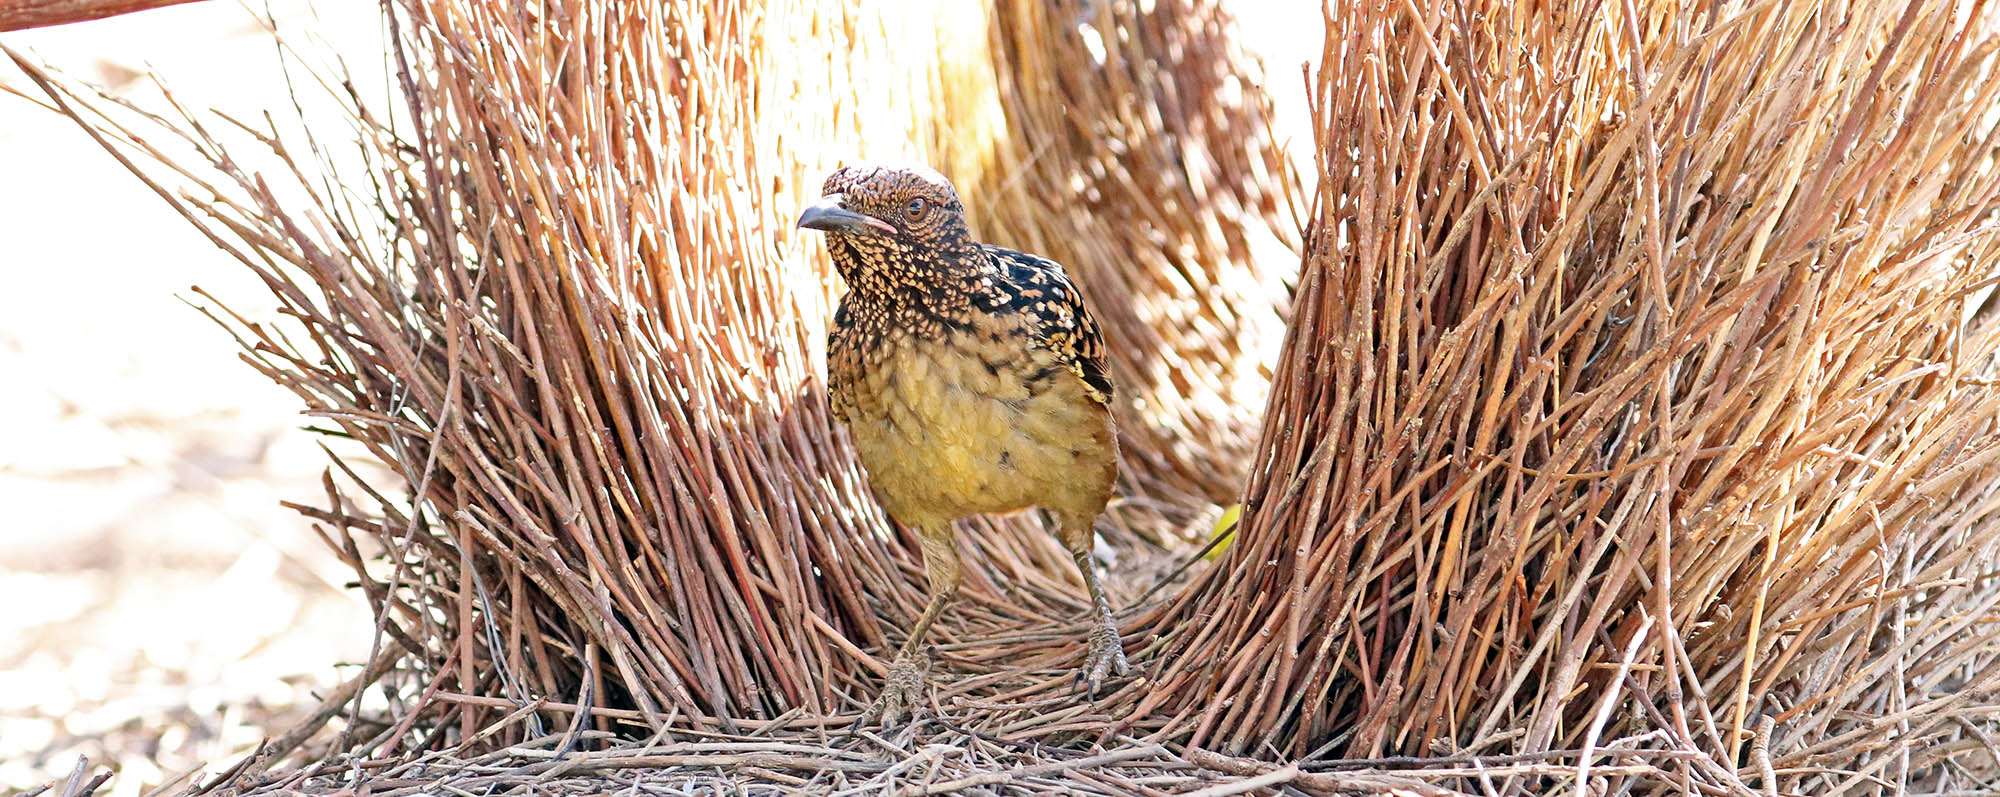 Western Bowerbird at bower (image by Damon Ramsey)